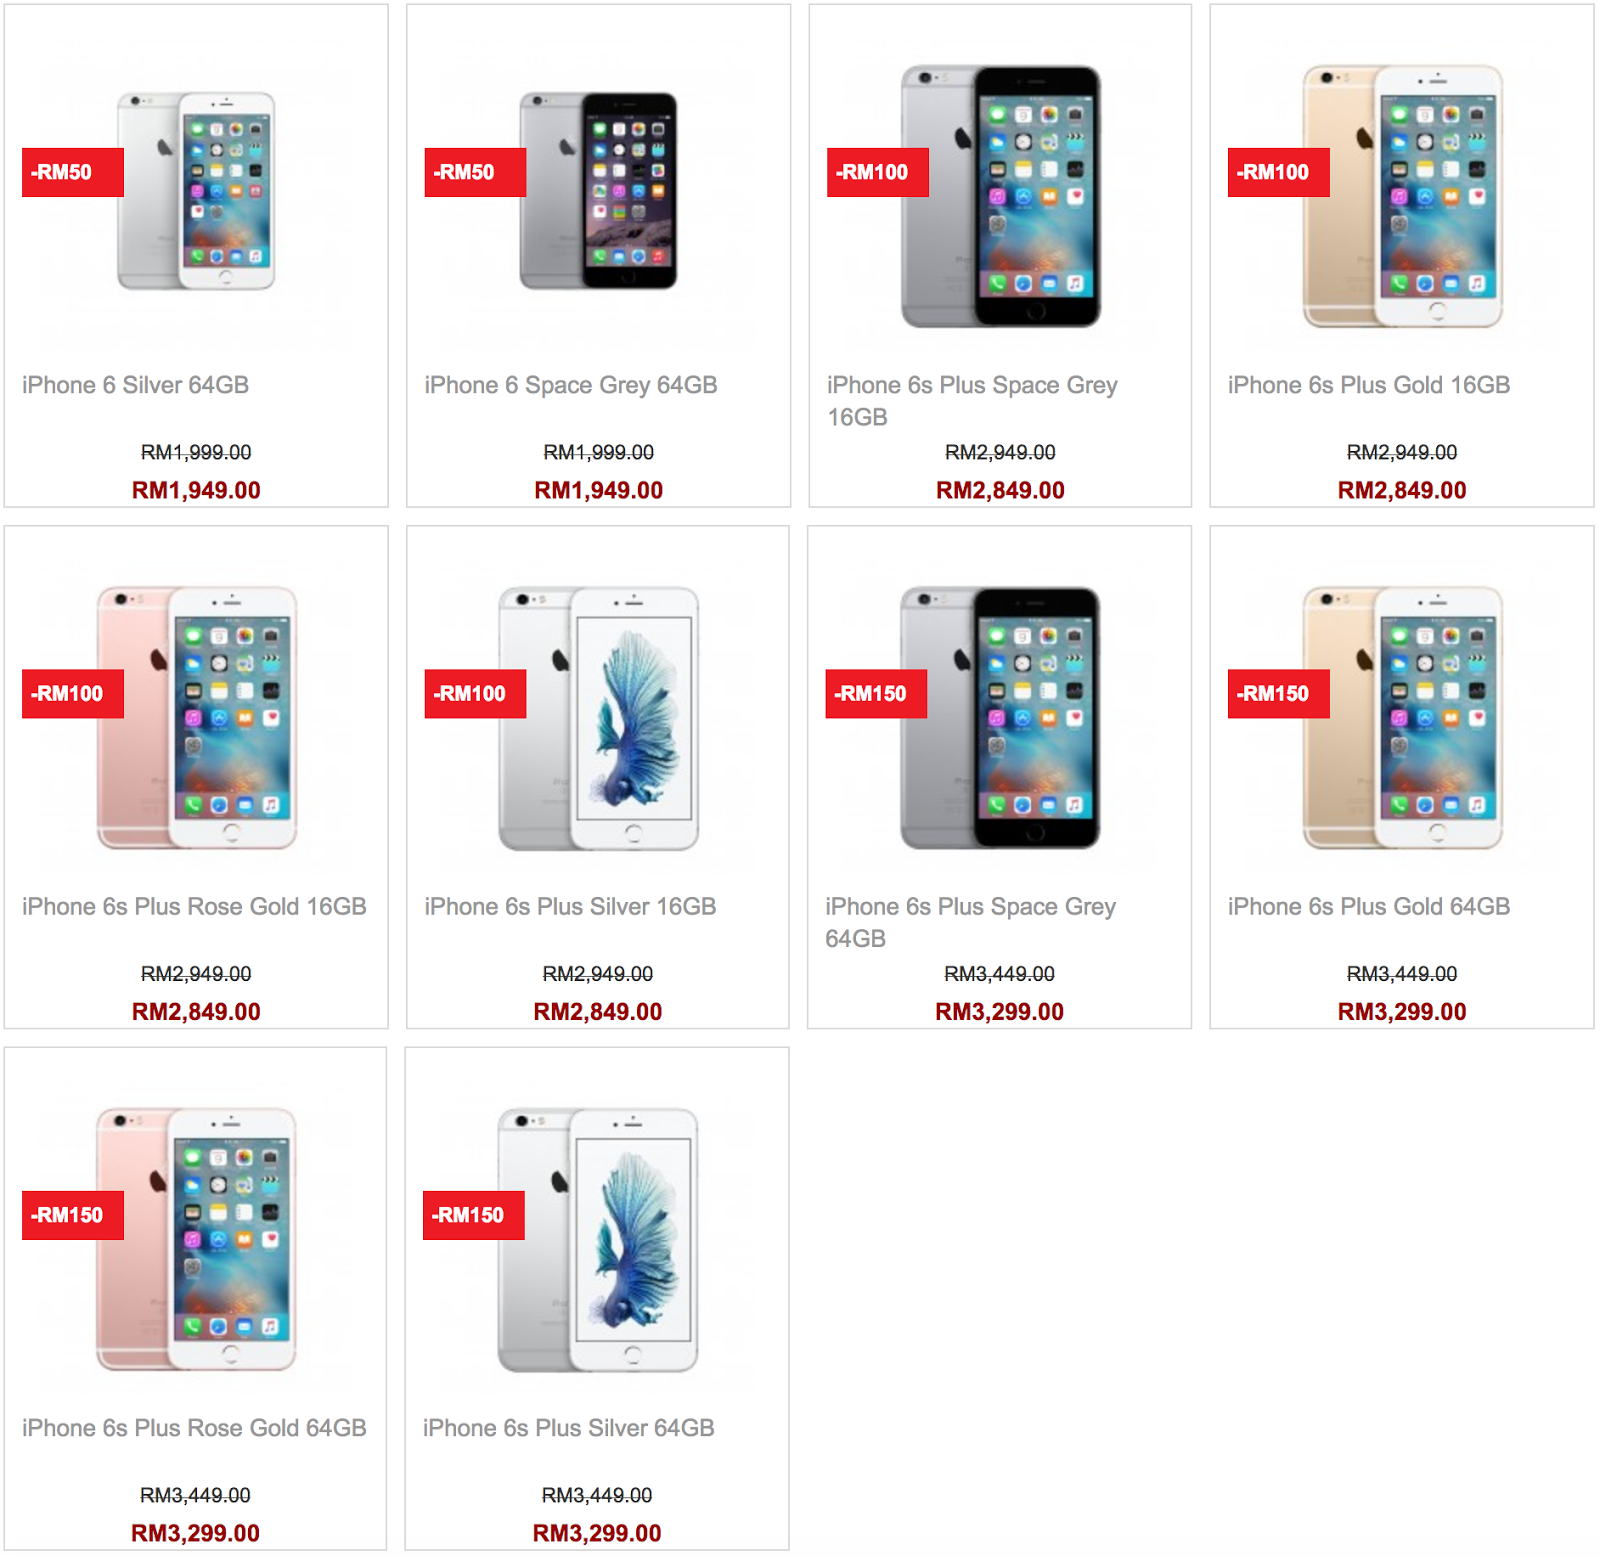 price of iphone 6 senheng iphone up to rm150 free lightning cable 1738